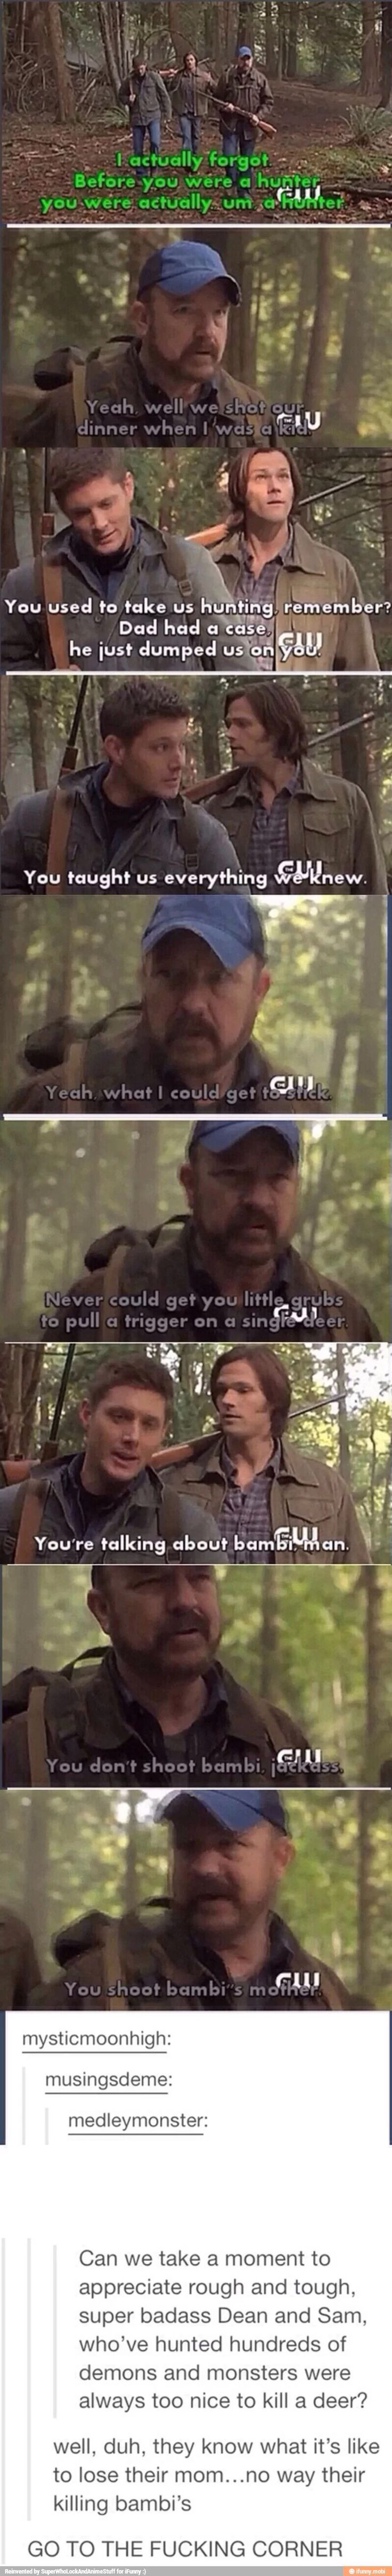 Omg. XD aaaw. Also how badass Bobby knows the thorough story of Bambi. Aaaw